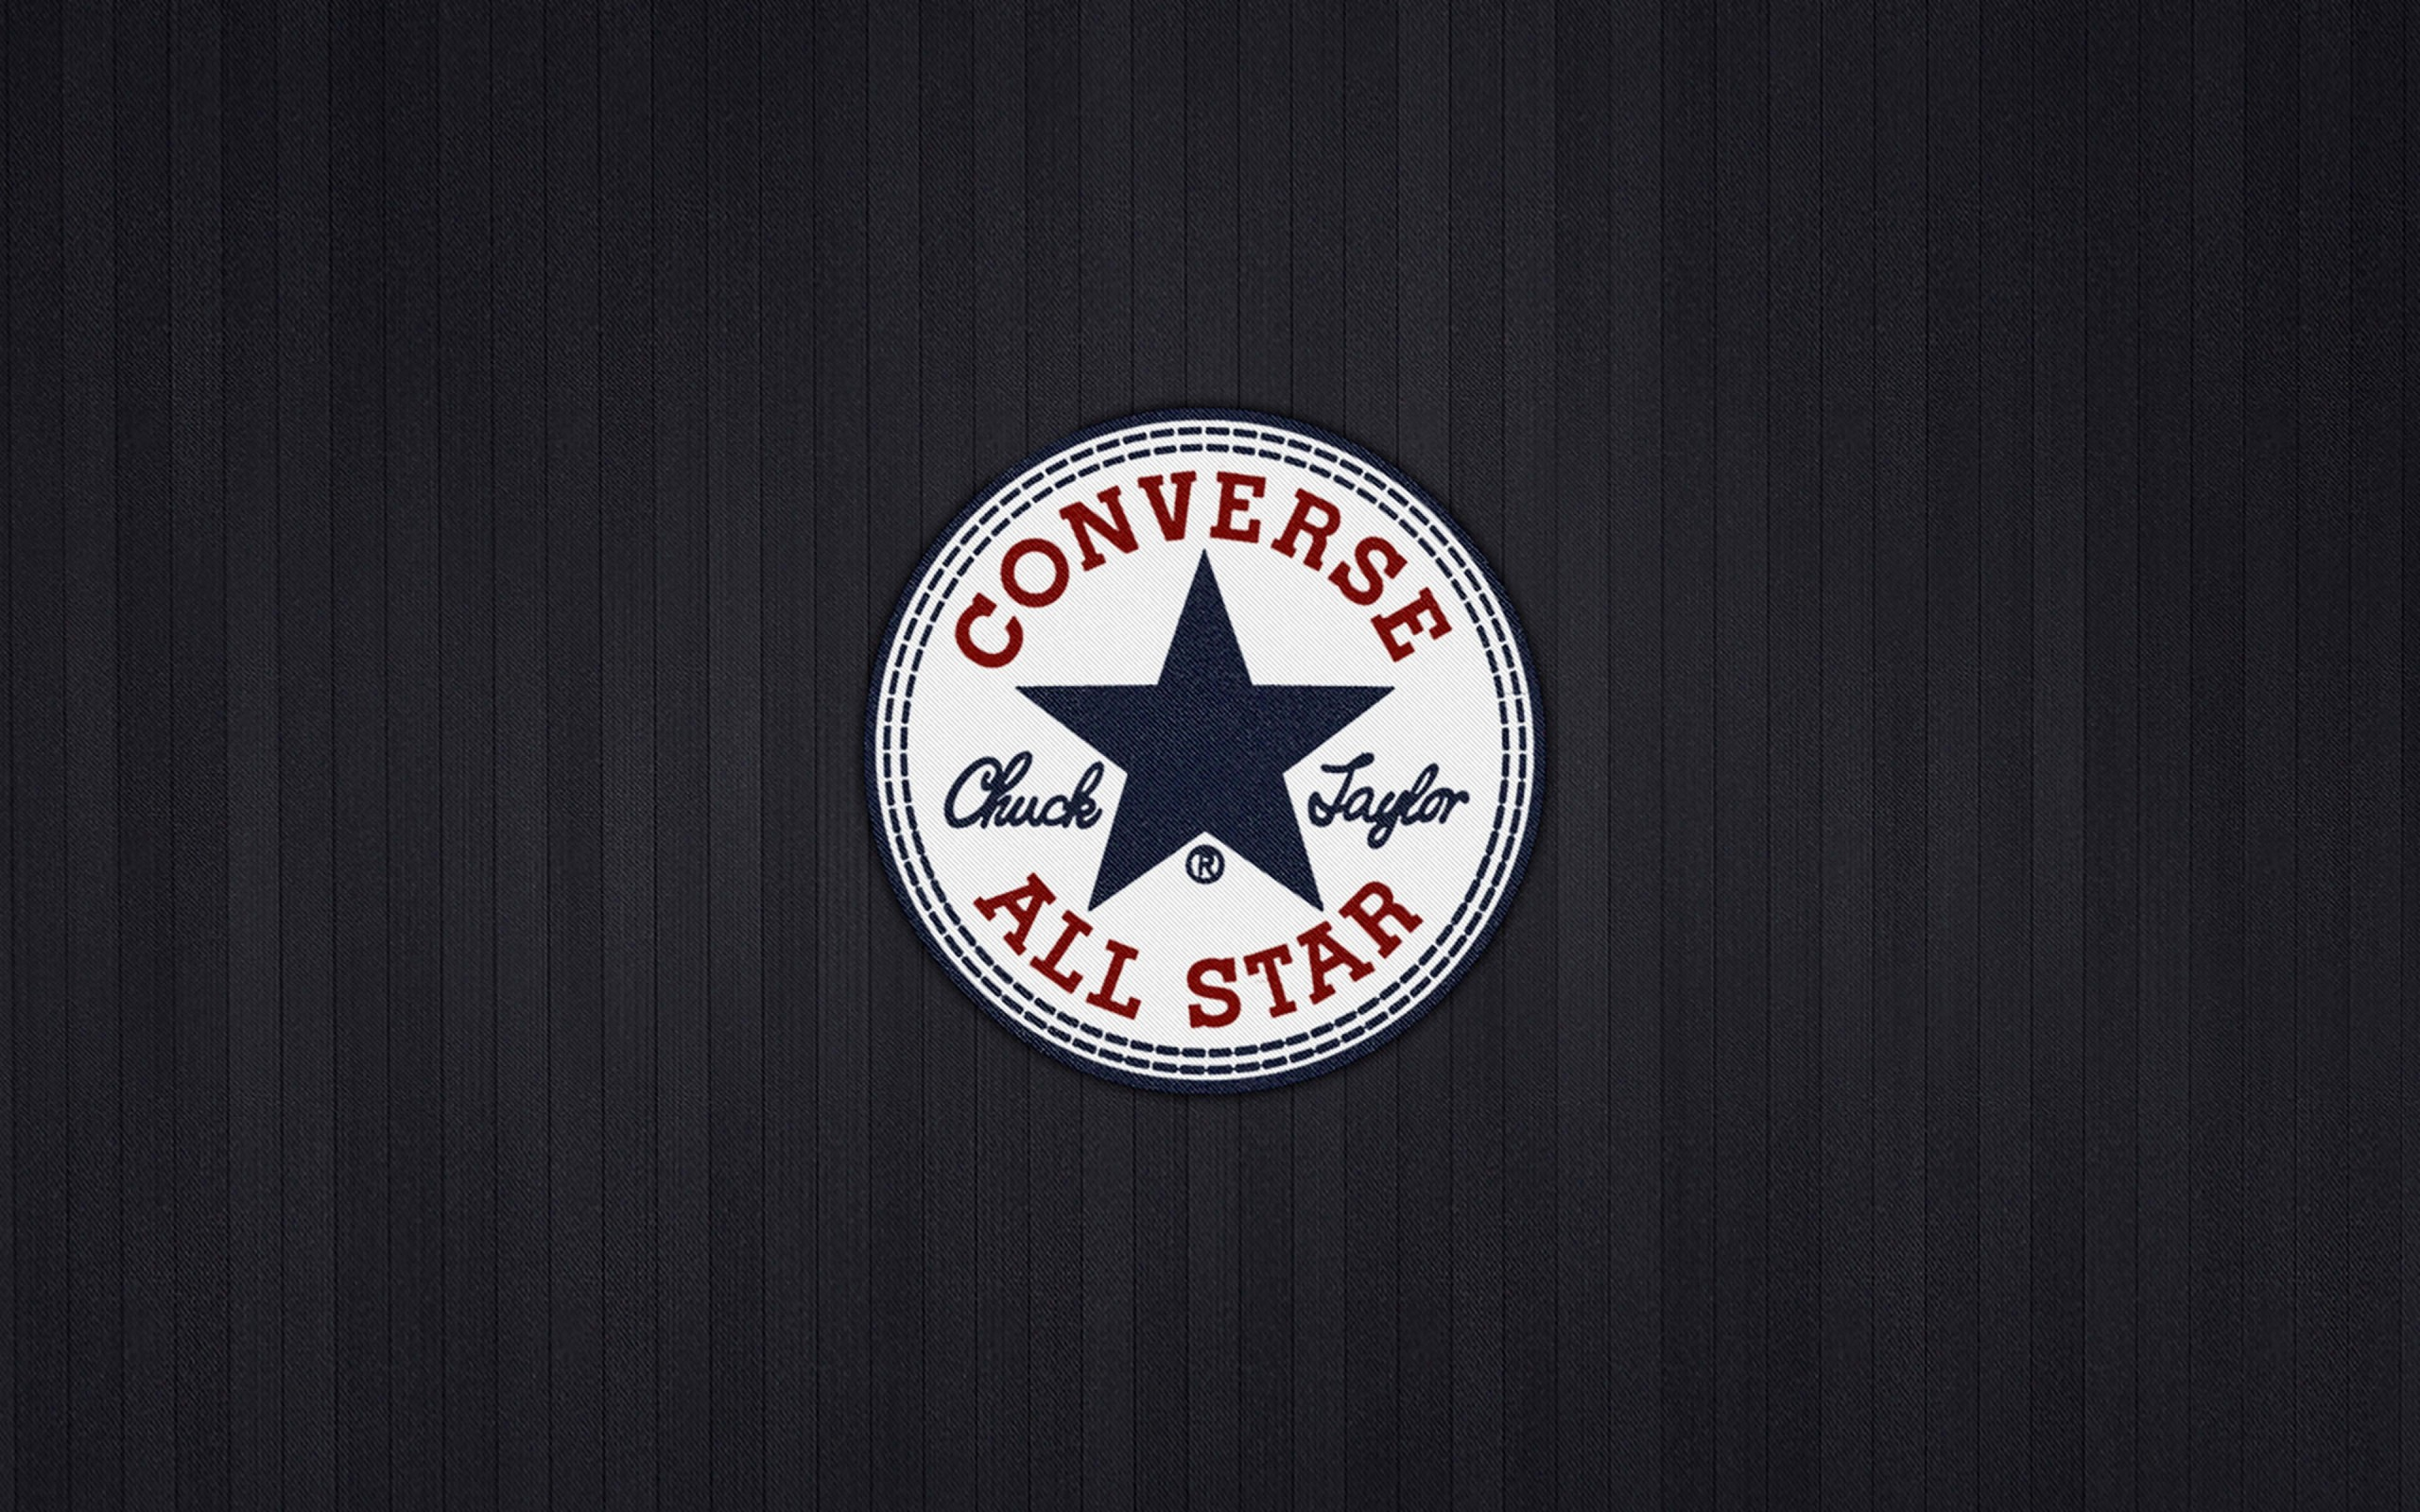 Converse All Star Wallpaper for Desktop 2560x1600